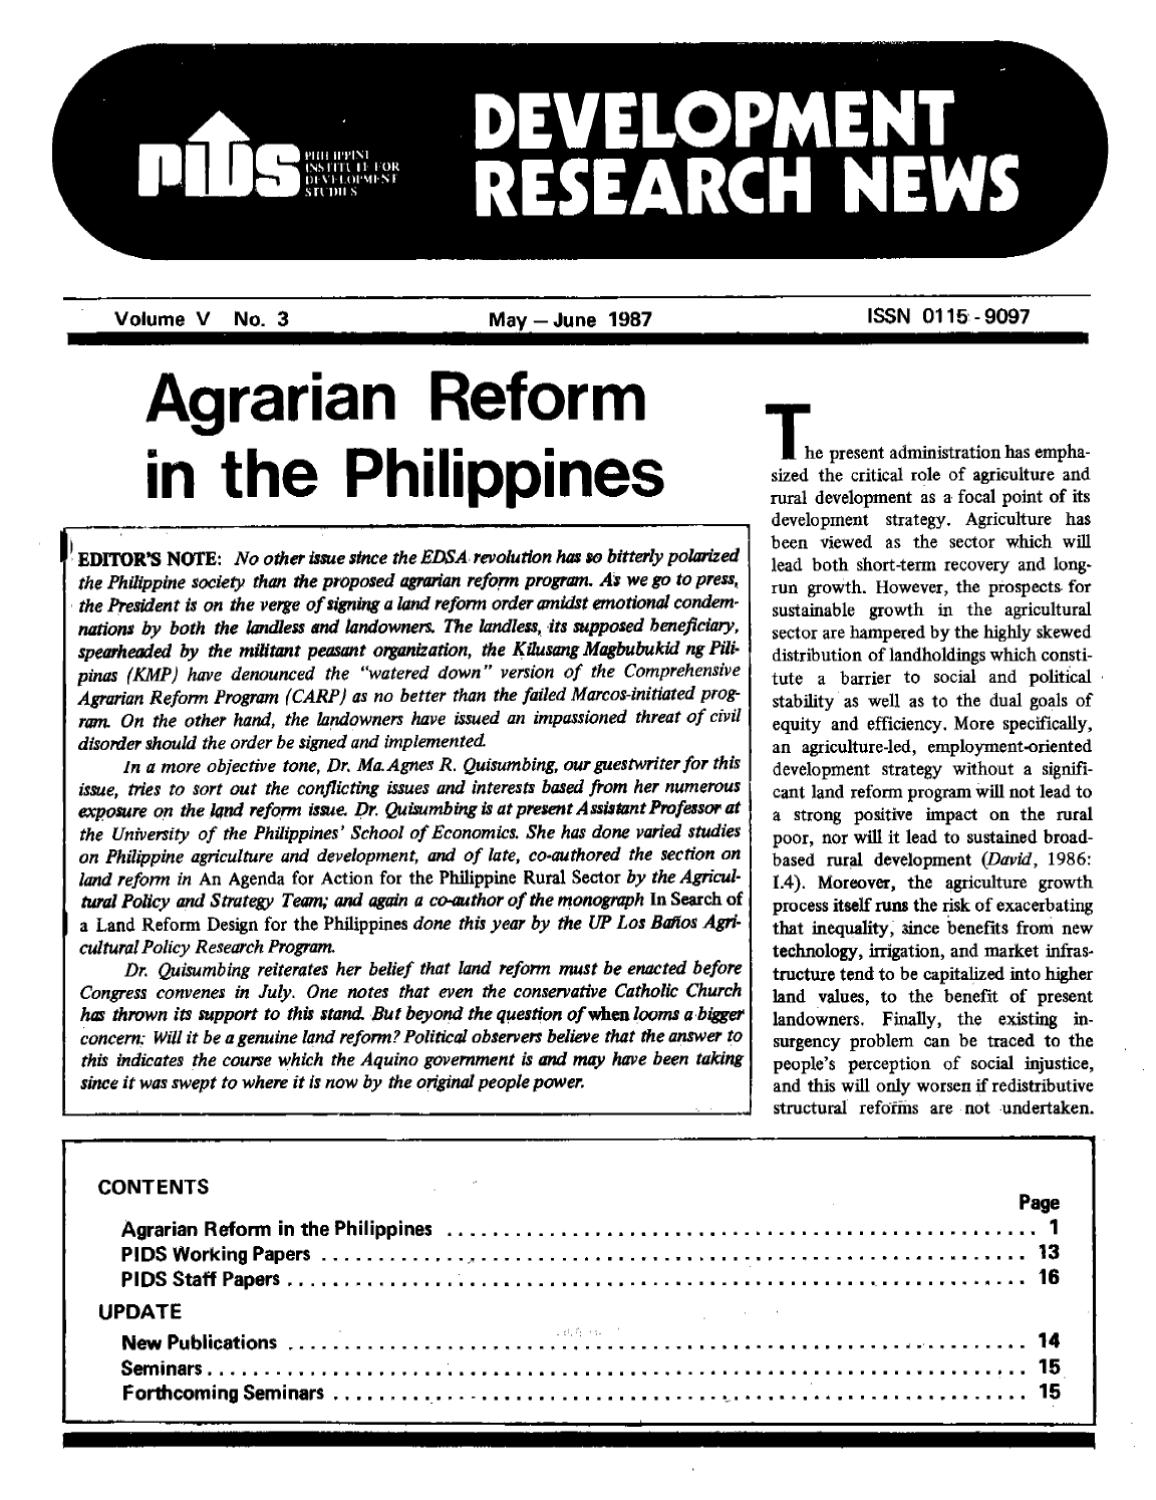 comprehensive agrarian reform program research paper Agrarian reform joseph ejercito estrada magkasaka (magkabalikat para sa kaunlarang agraryo) history of agrarian reform gloria macapagal - arroyo (3rd sona , july 2012) theory application what theories / models are applicable to the comprehensive agrarian reform program.